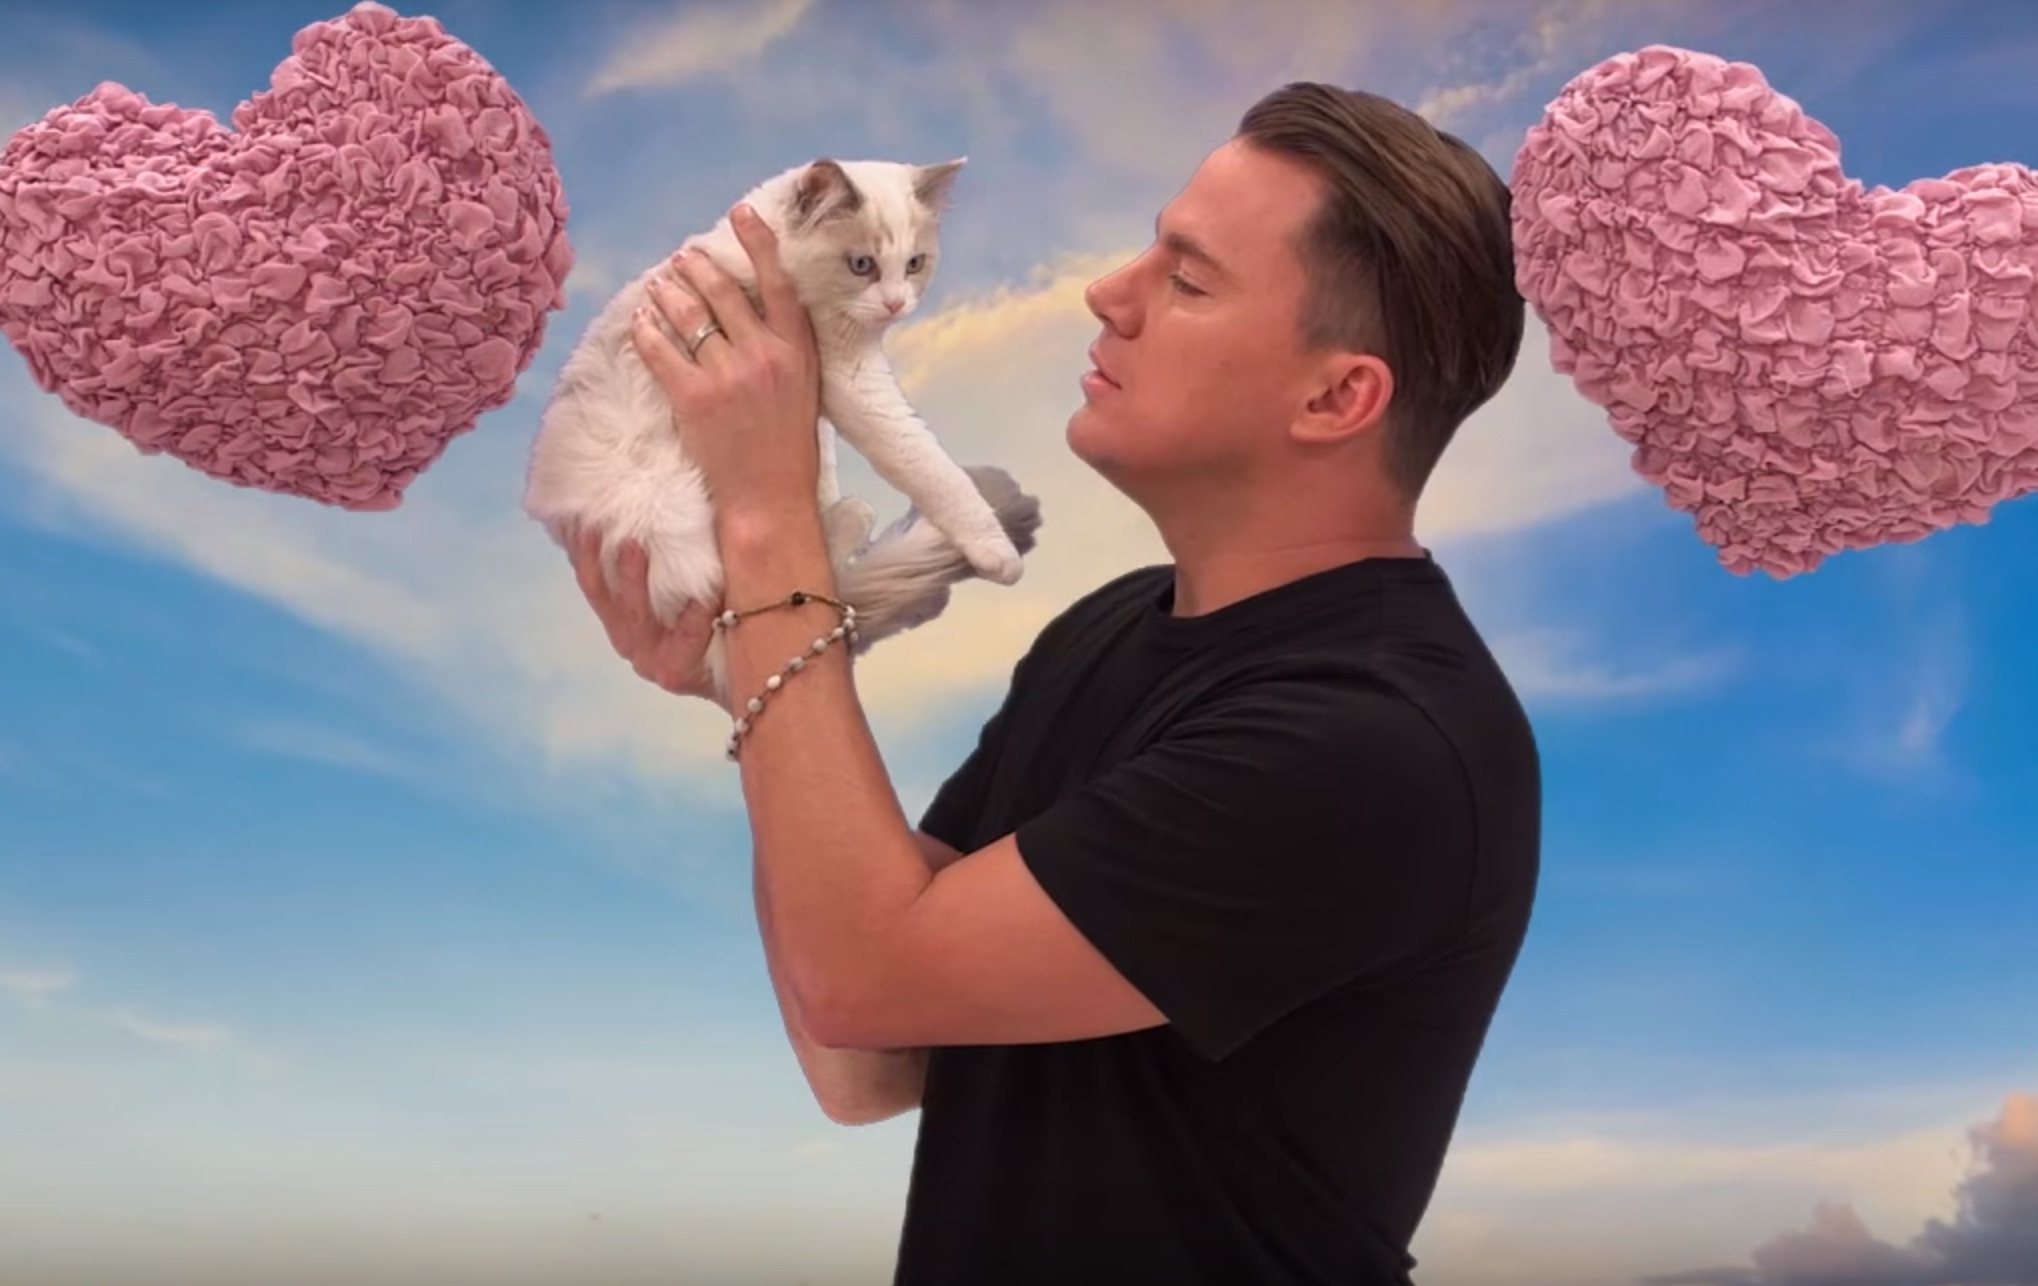 Channing Tatum vs. a kitten is the funniest thing you'll see all morning